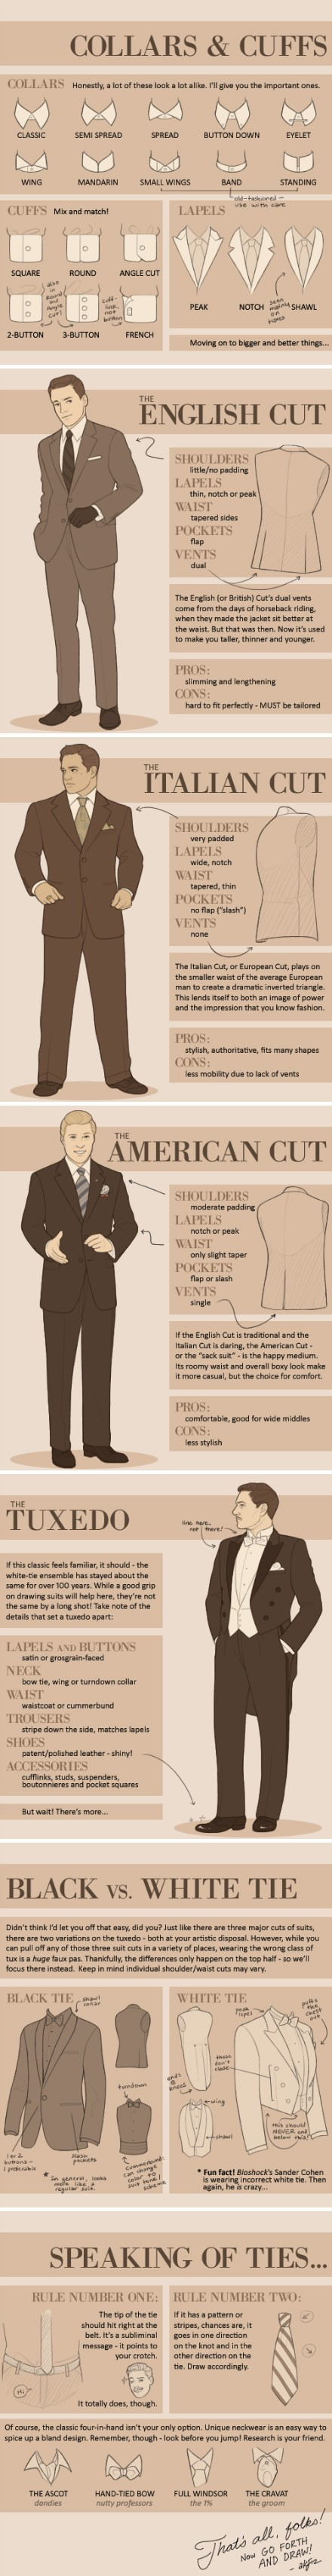 Suit a variety of kinds of details kinds of cuff neckline tie